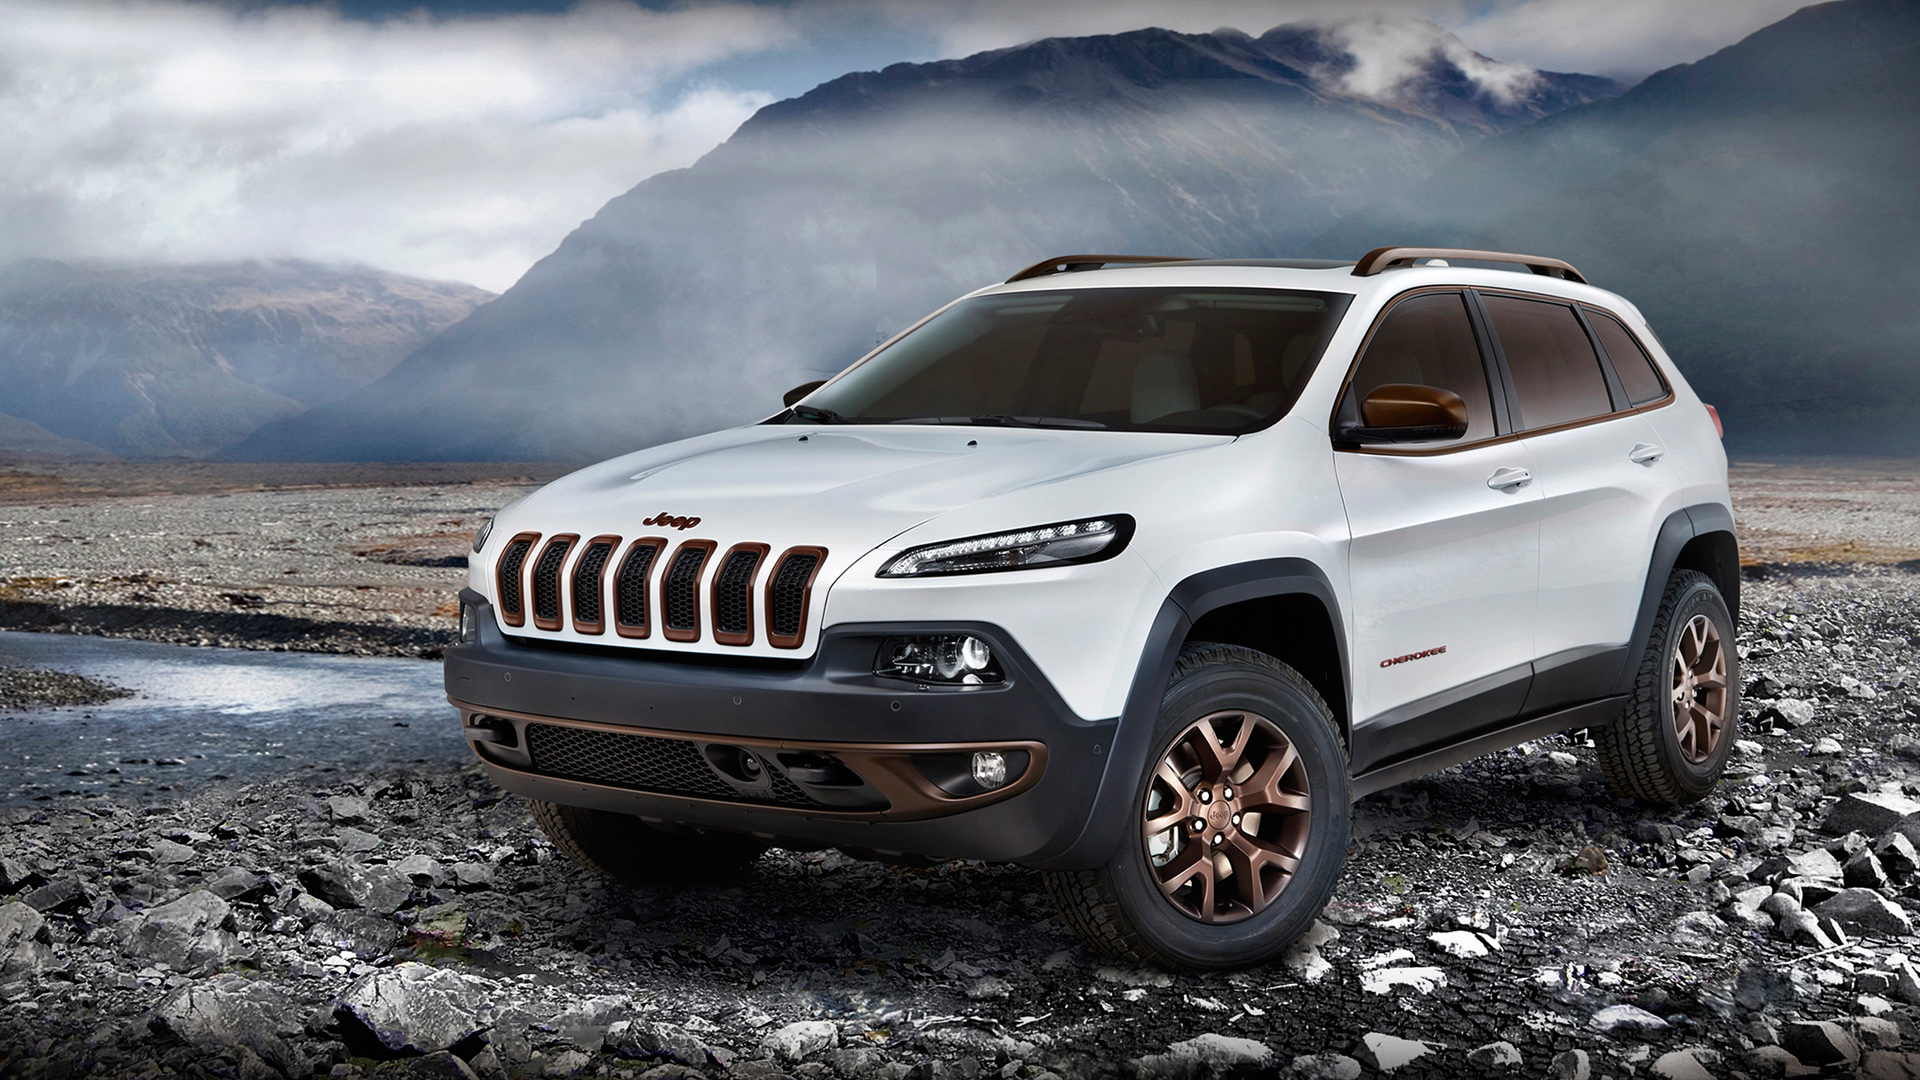 Jeep Car Images Hd: 2014 Jeep Cherokee Sageland Concept Wallpaper